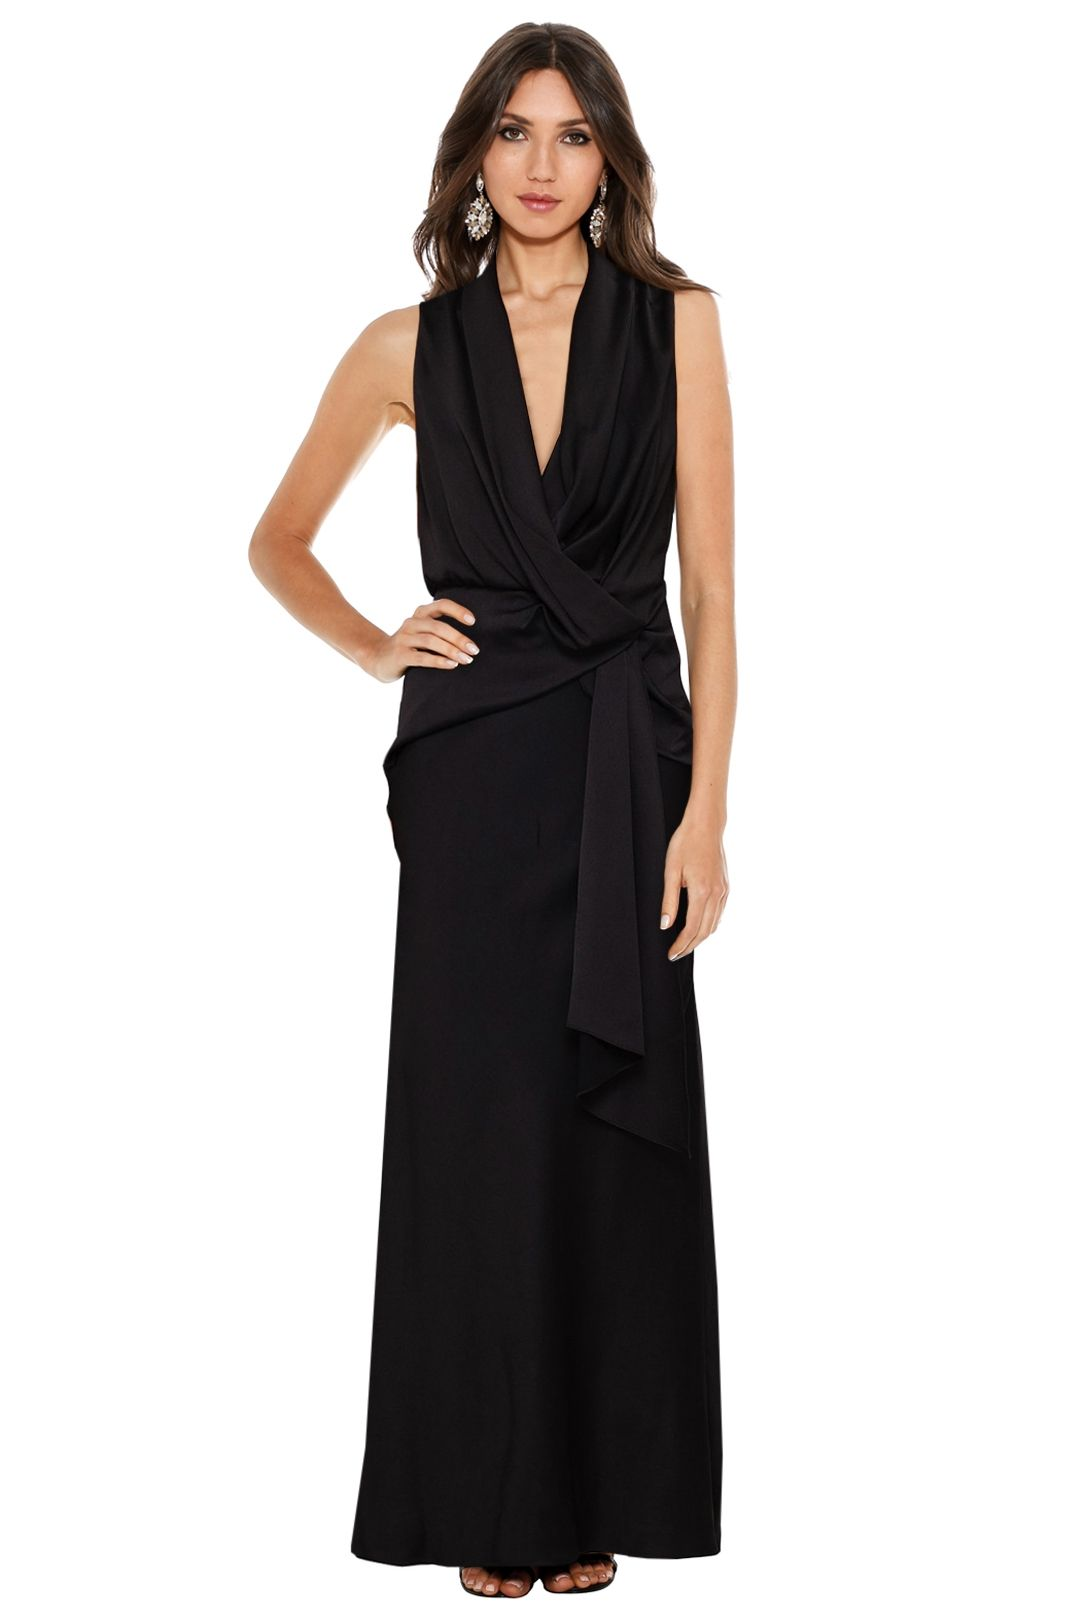 Camilla and Marc - Dahlia Dress - Black - Front